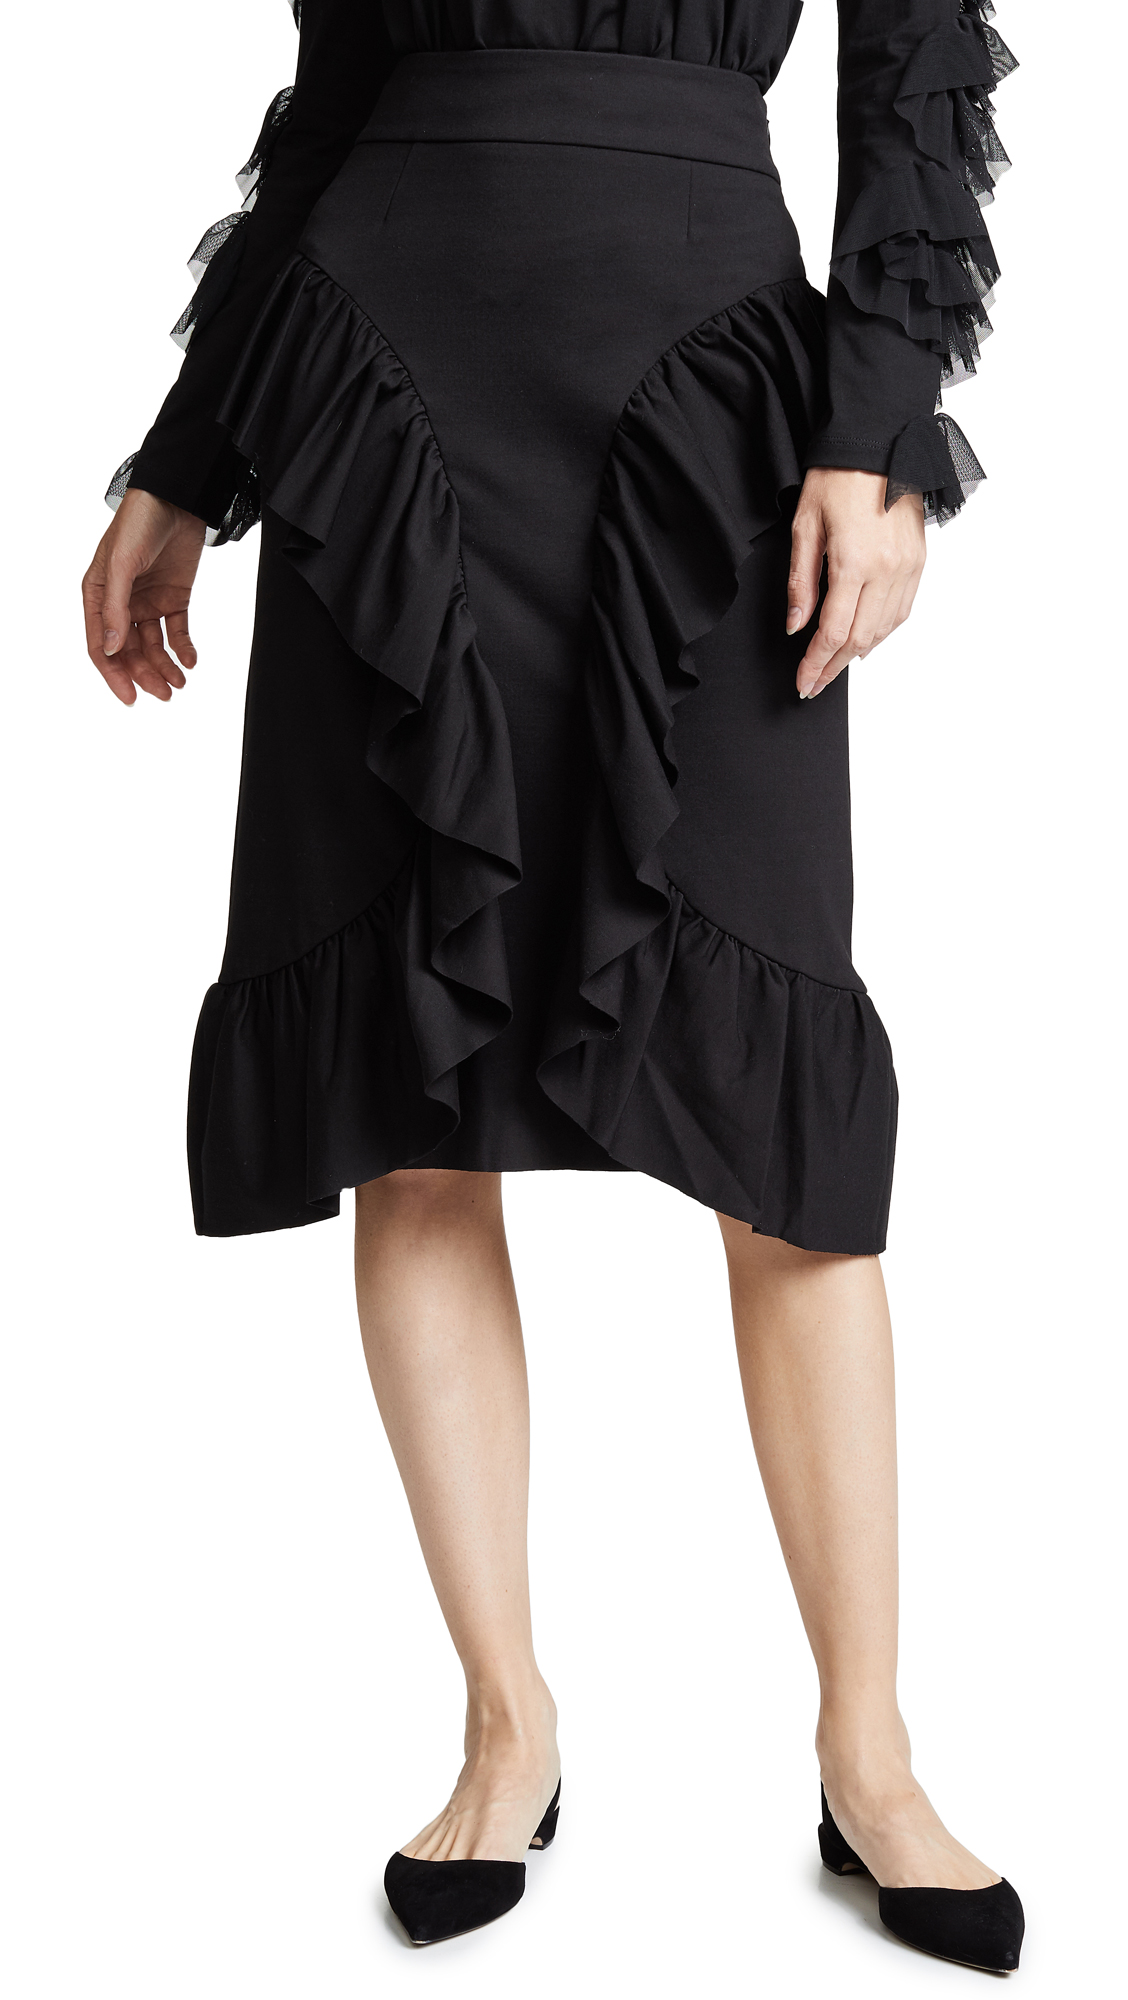 RHIE Ruffle Skirt In Black